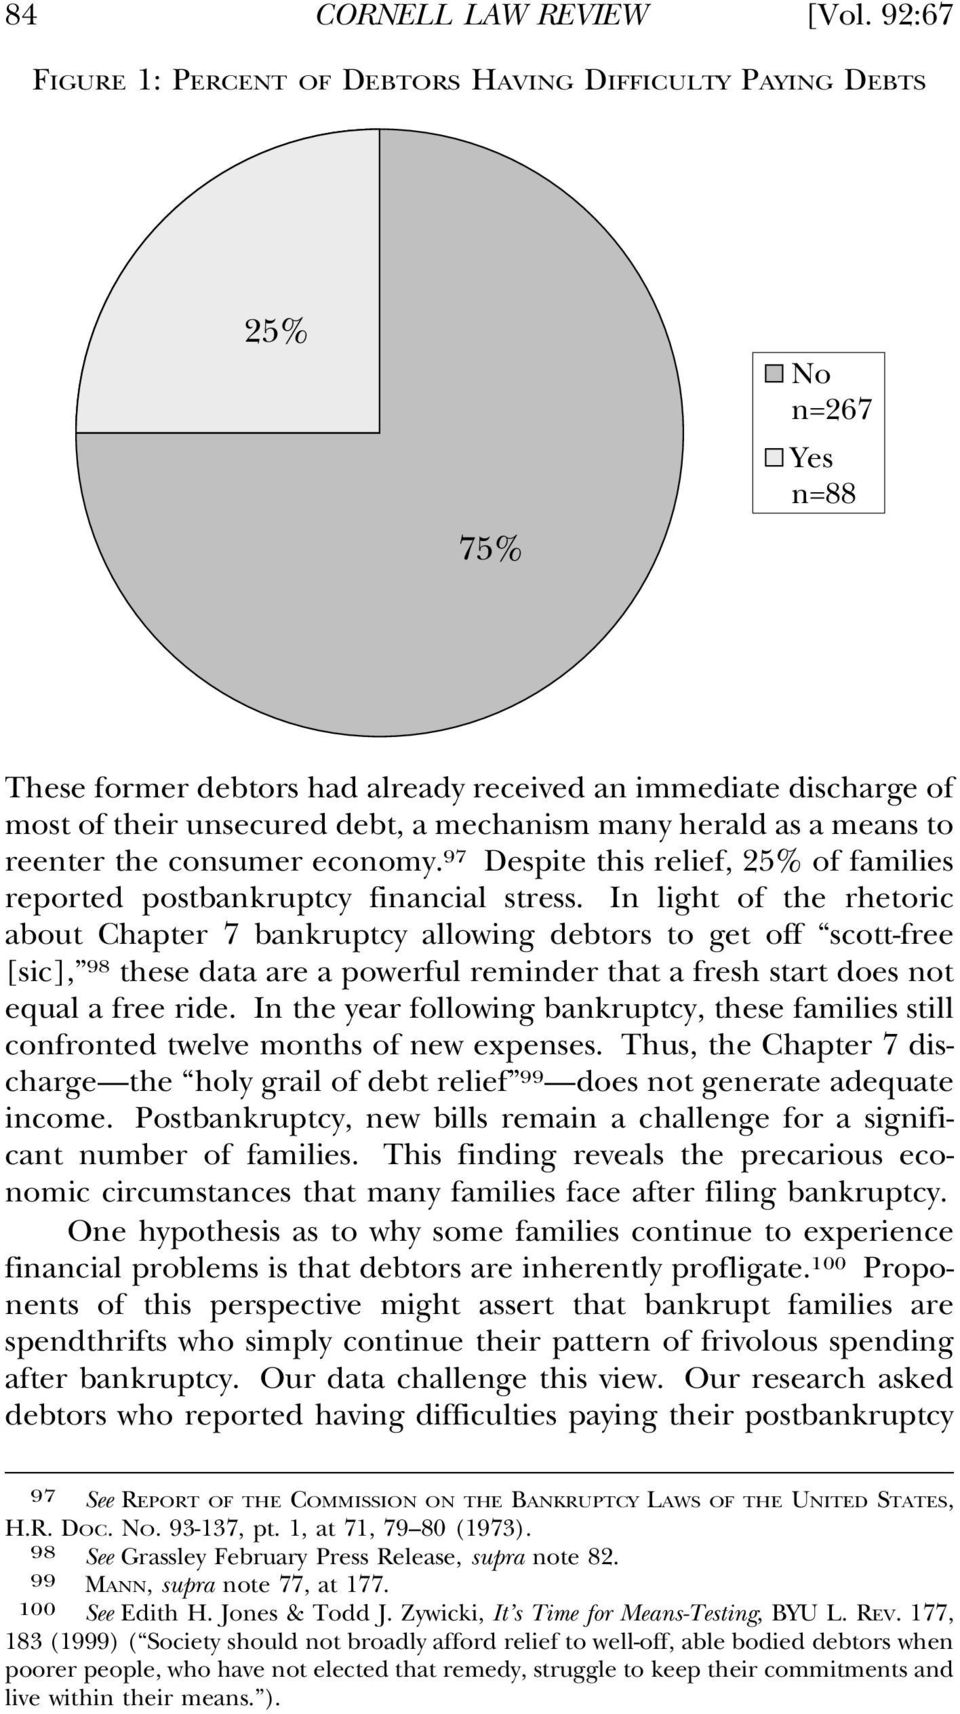 mechanism many herald as a means to reenter the consumer economy. 97 Despite this relief, 25% of families reported postbankruptcy financial stress.